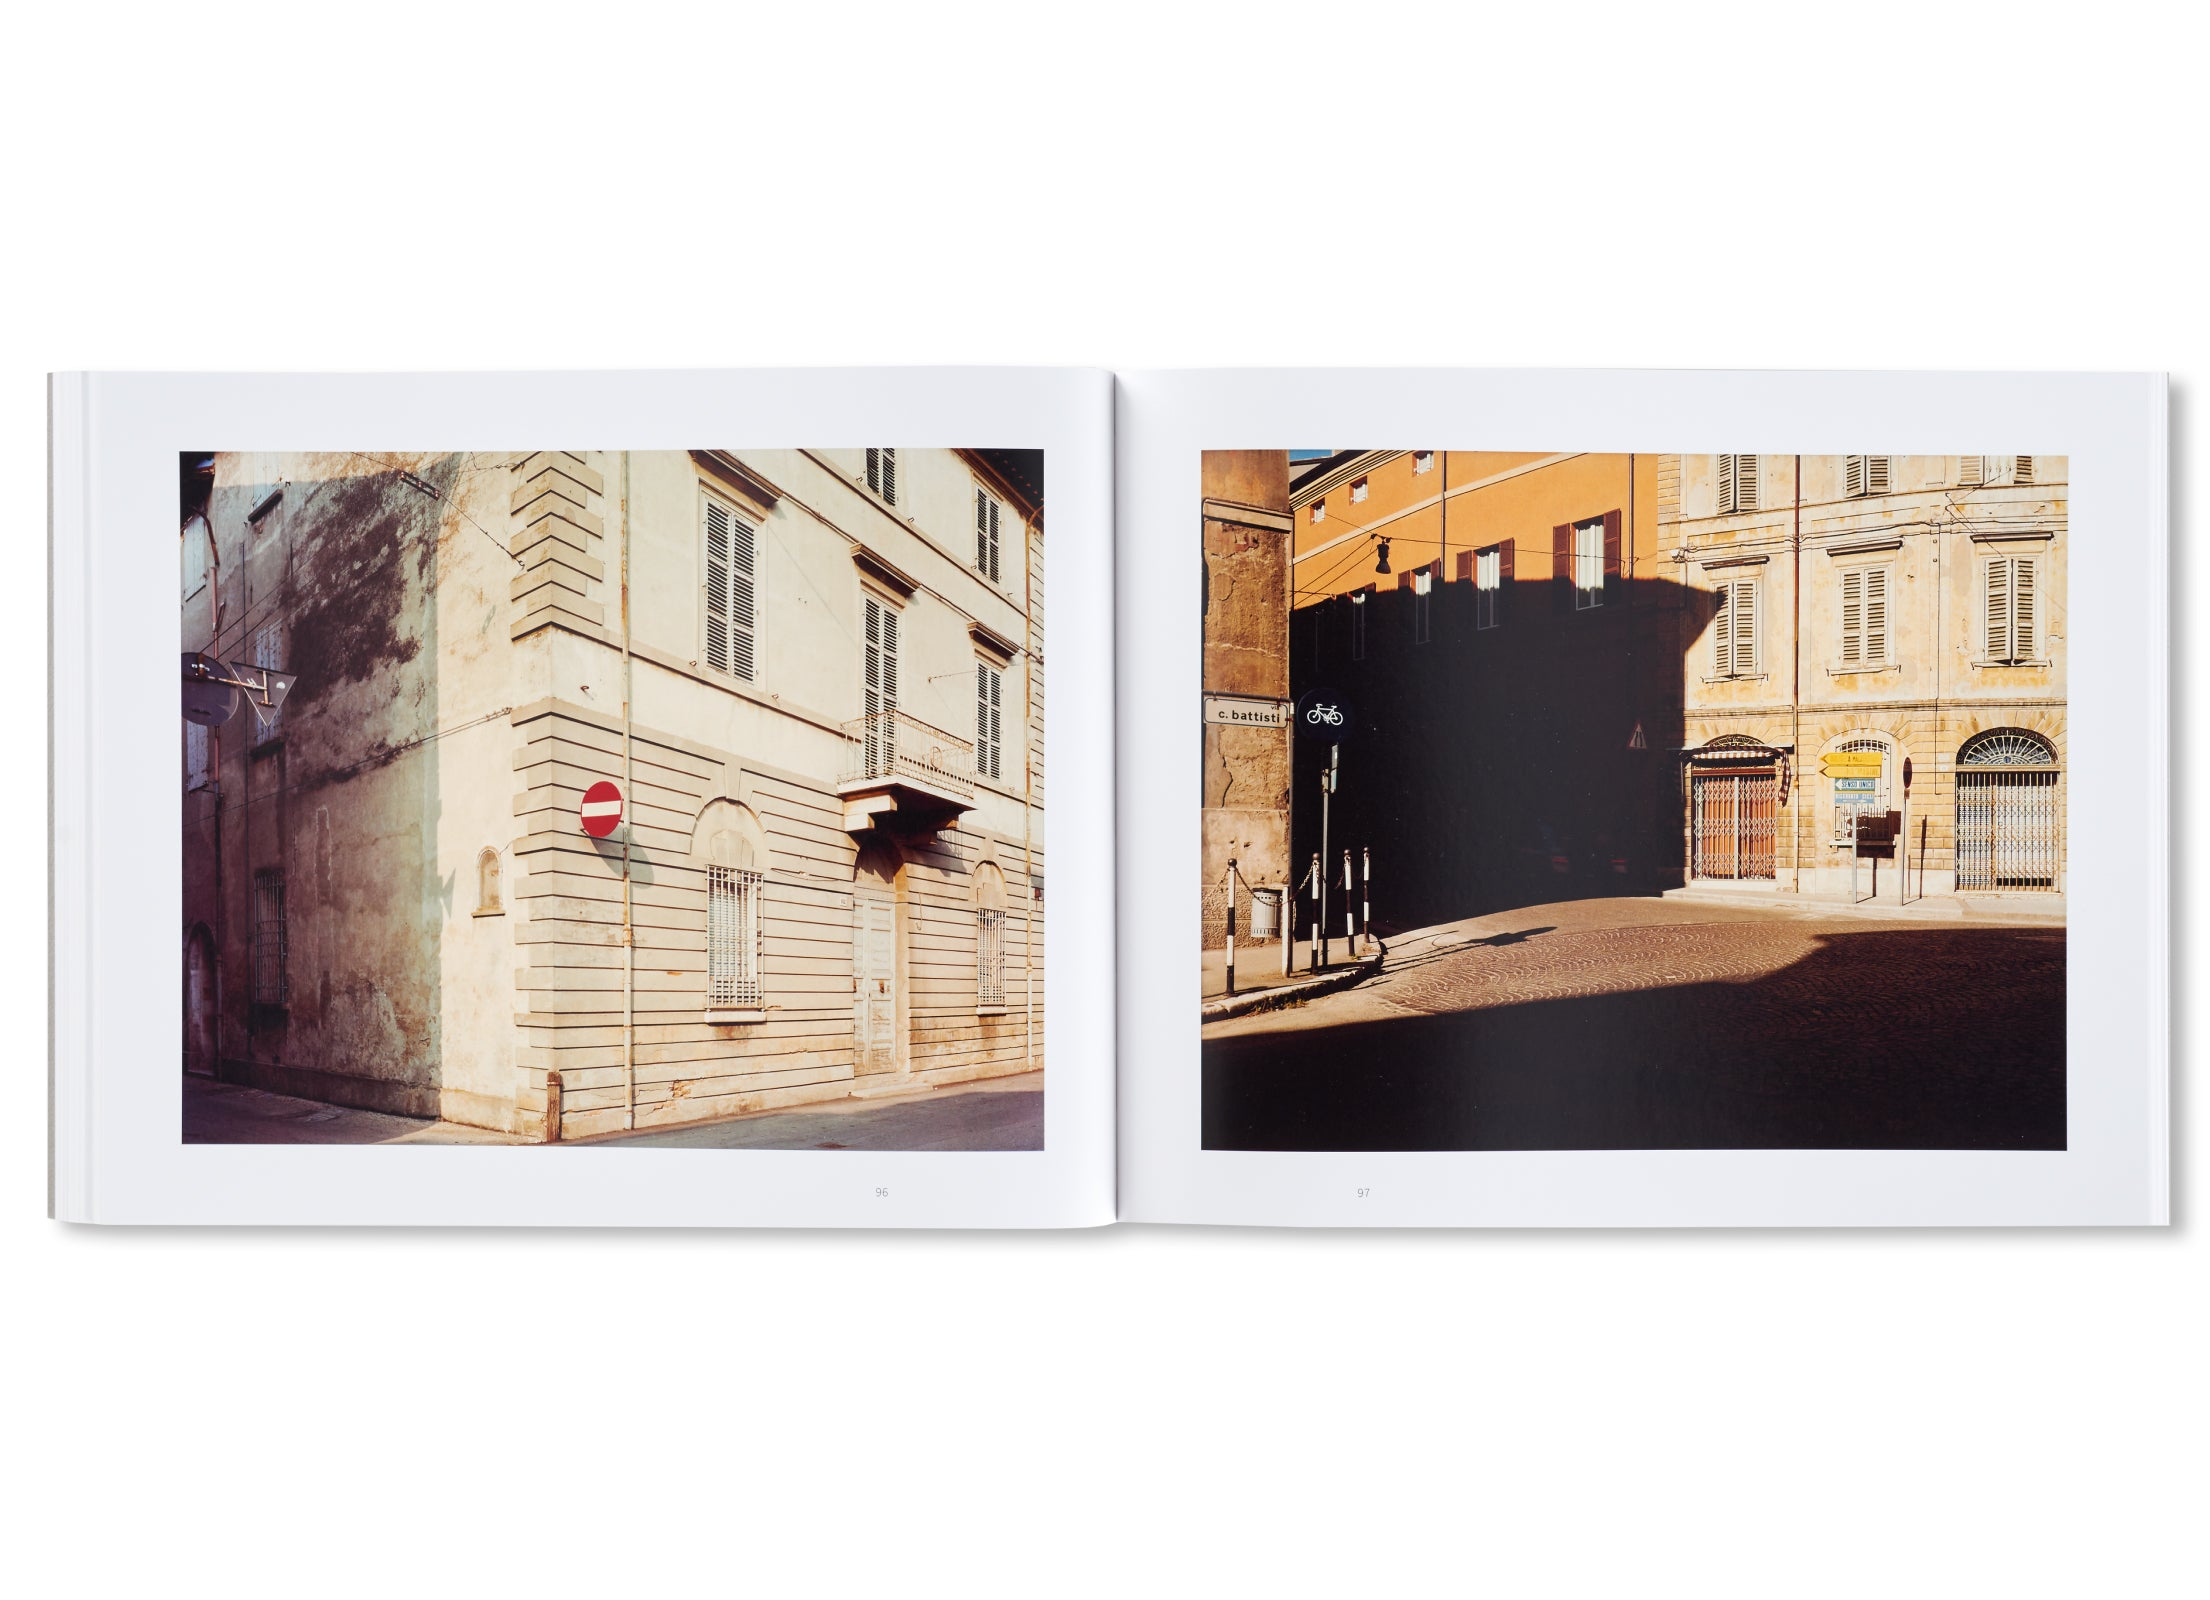 PER STRADA by Guido Guidi [SIGNED]